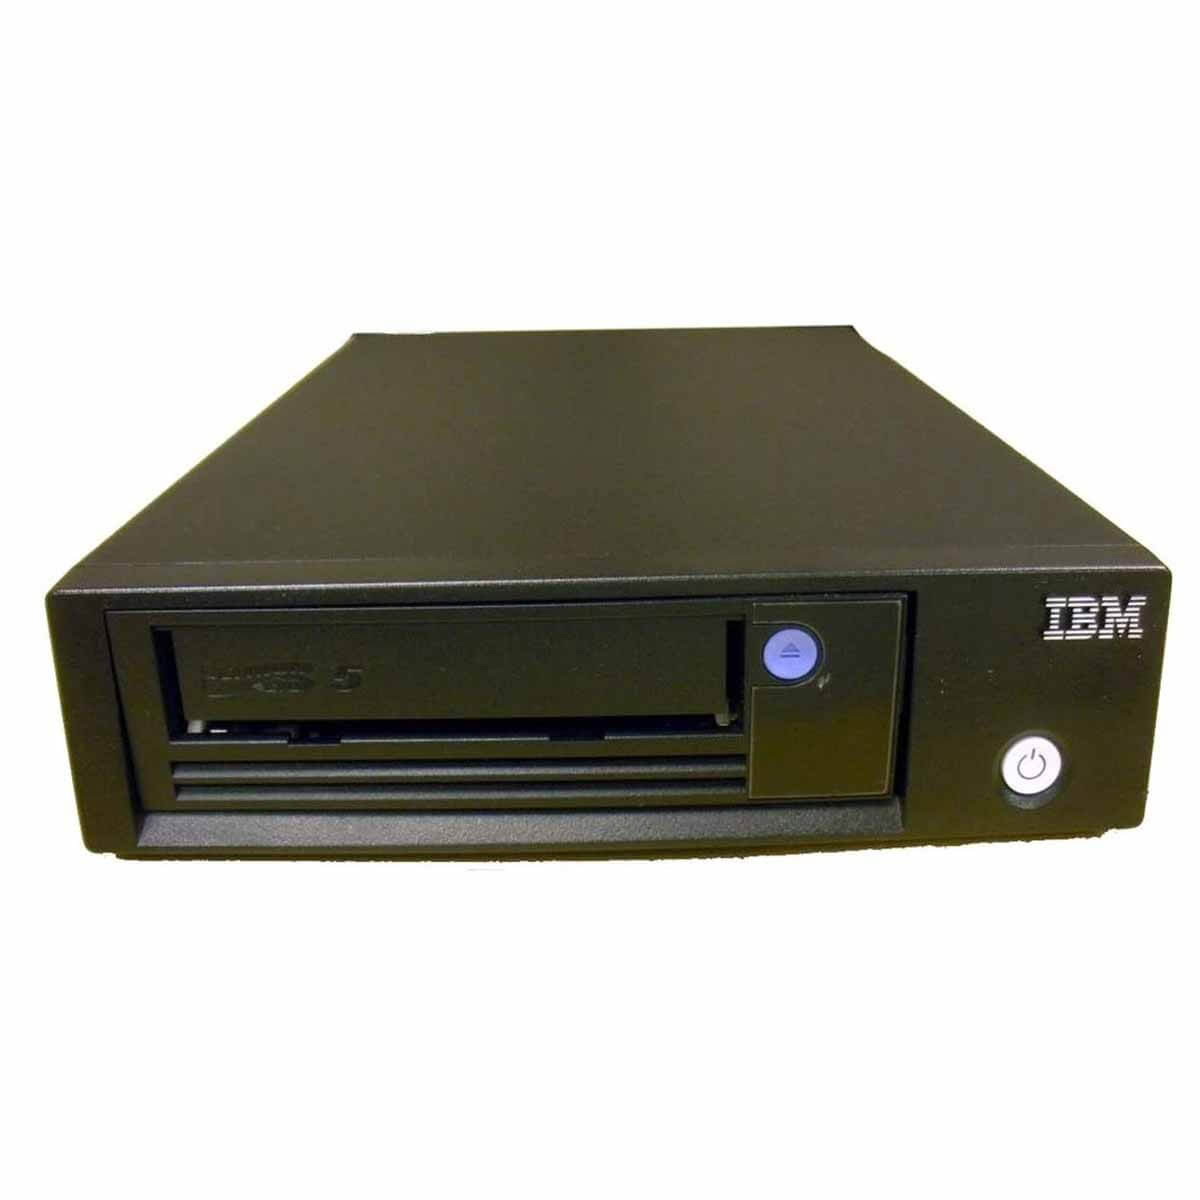 Buy & save on IBM Server Spare Parts from your trusted partners at Flagship Technologies. Browse our revolving inventory.